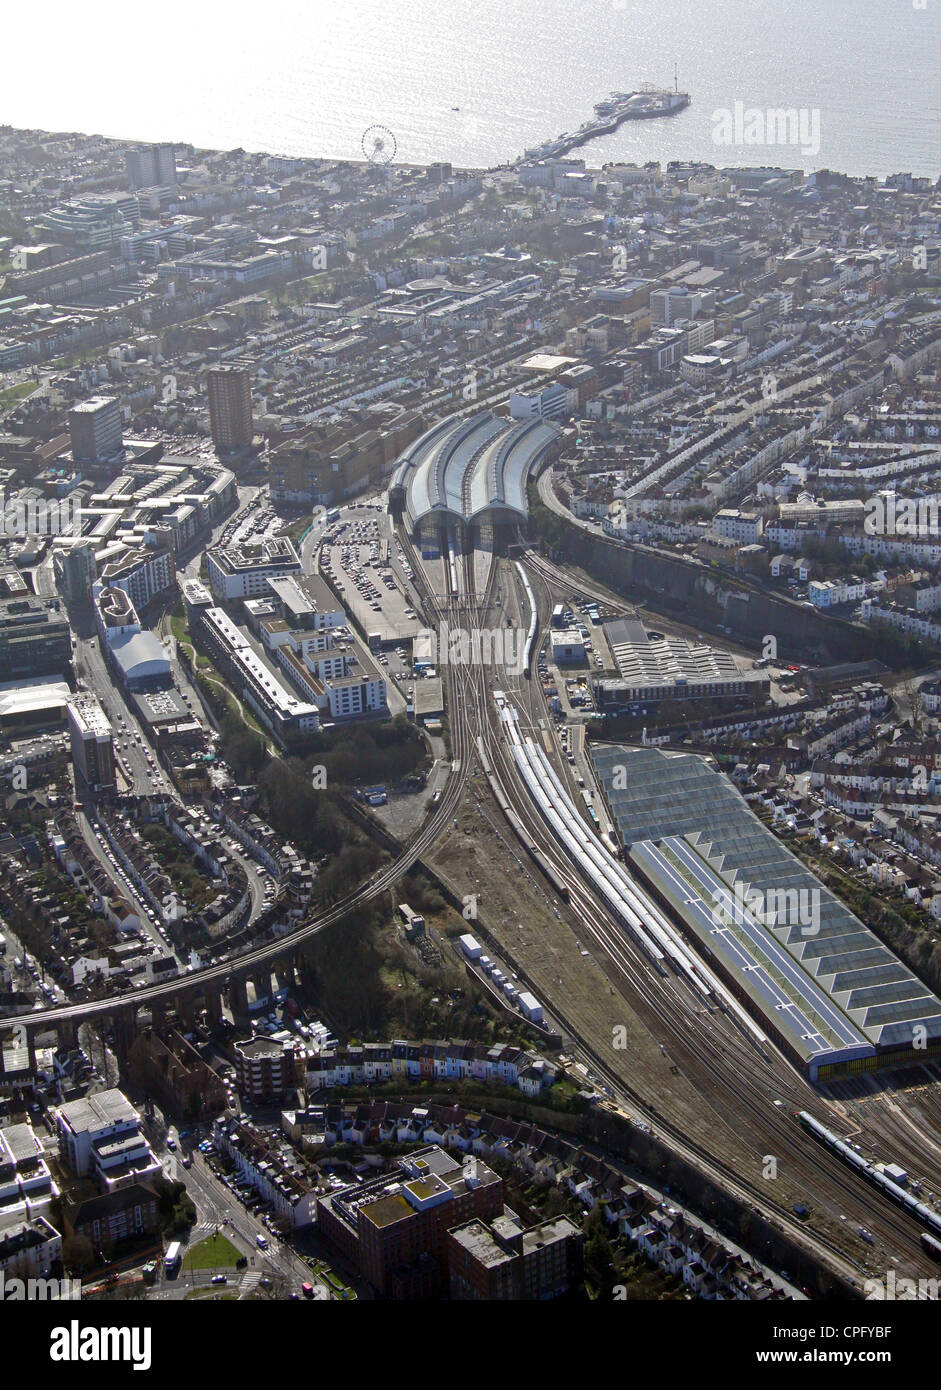 aerial view of Brighton railway station and Pier - Stock Image